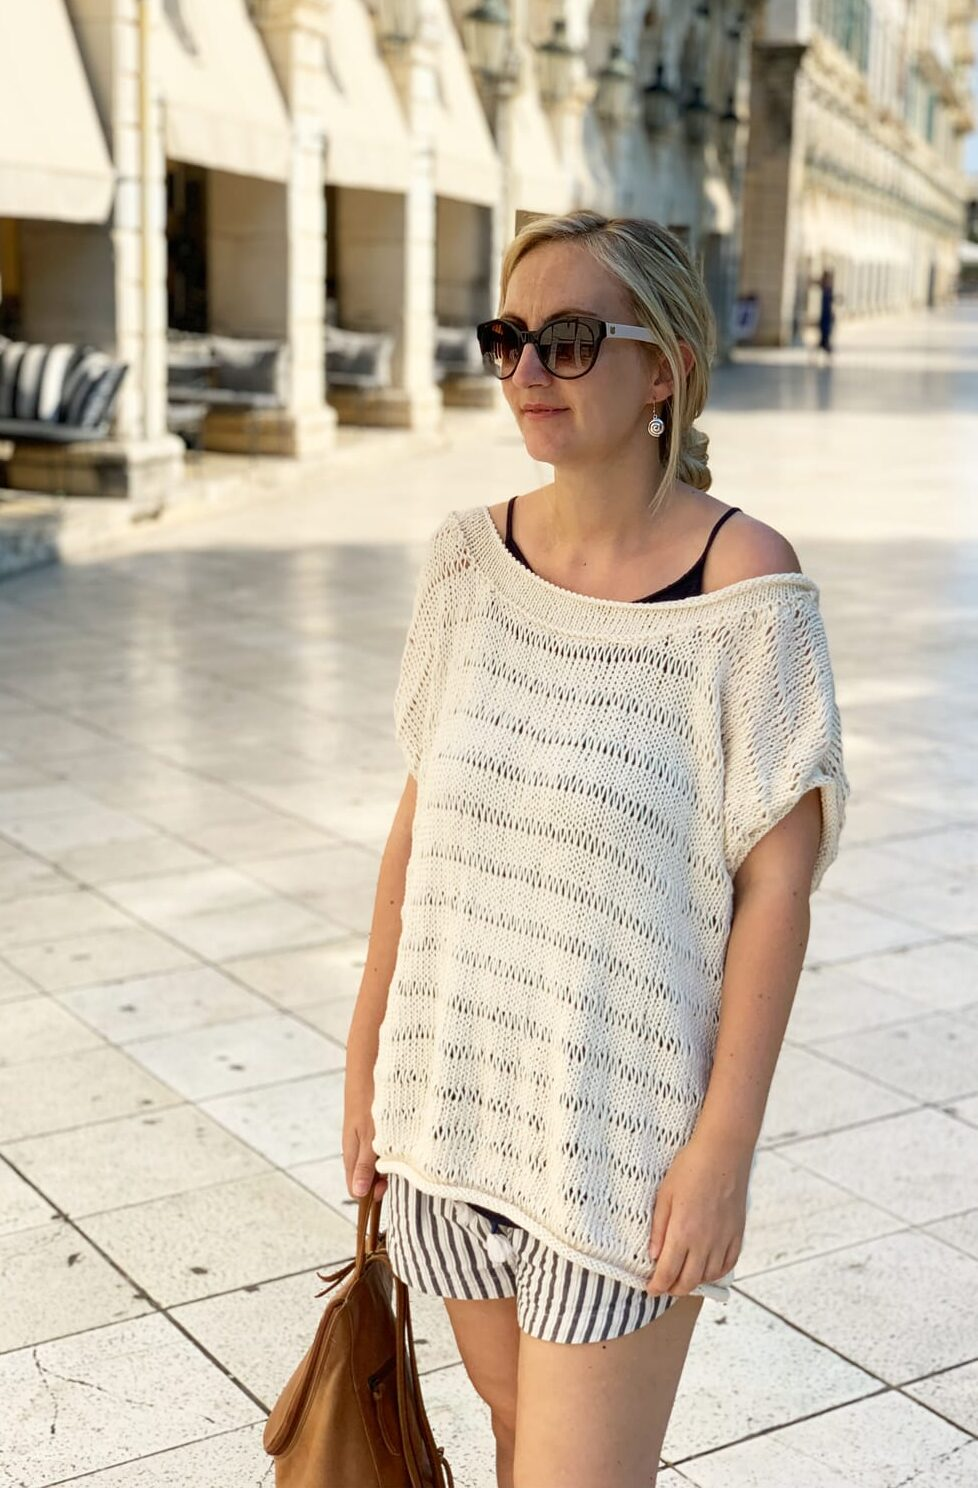 Drop Stitch Knit Top Pattern